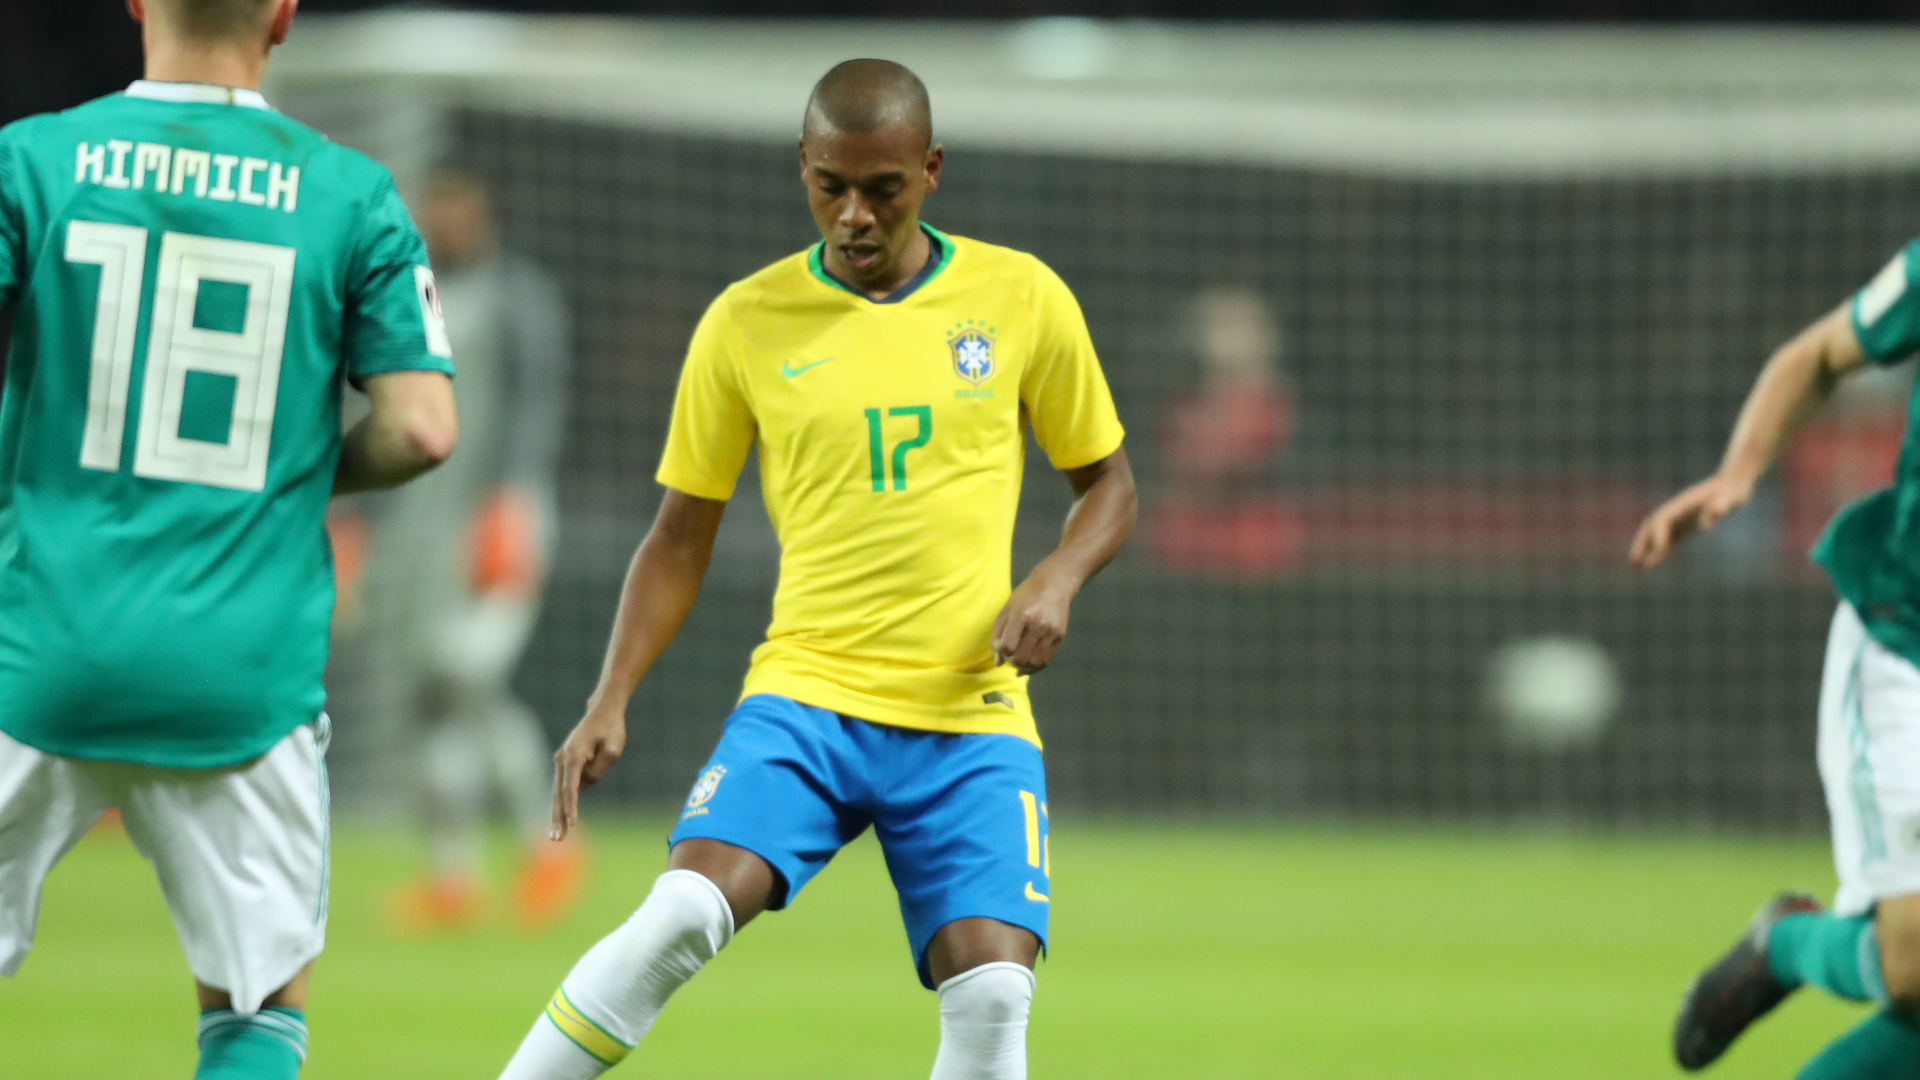 Fernandinho Germany Brazil 27032018 Friendly